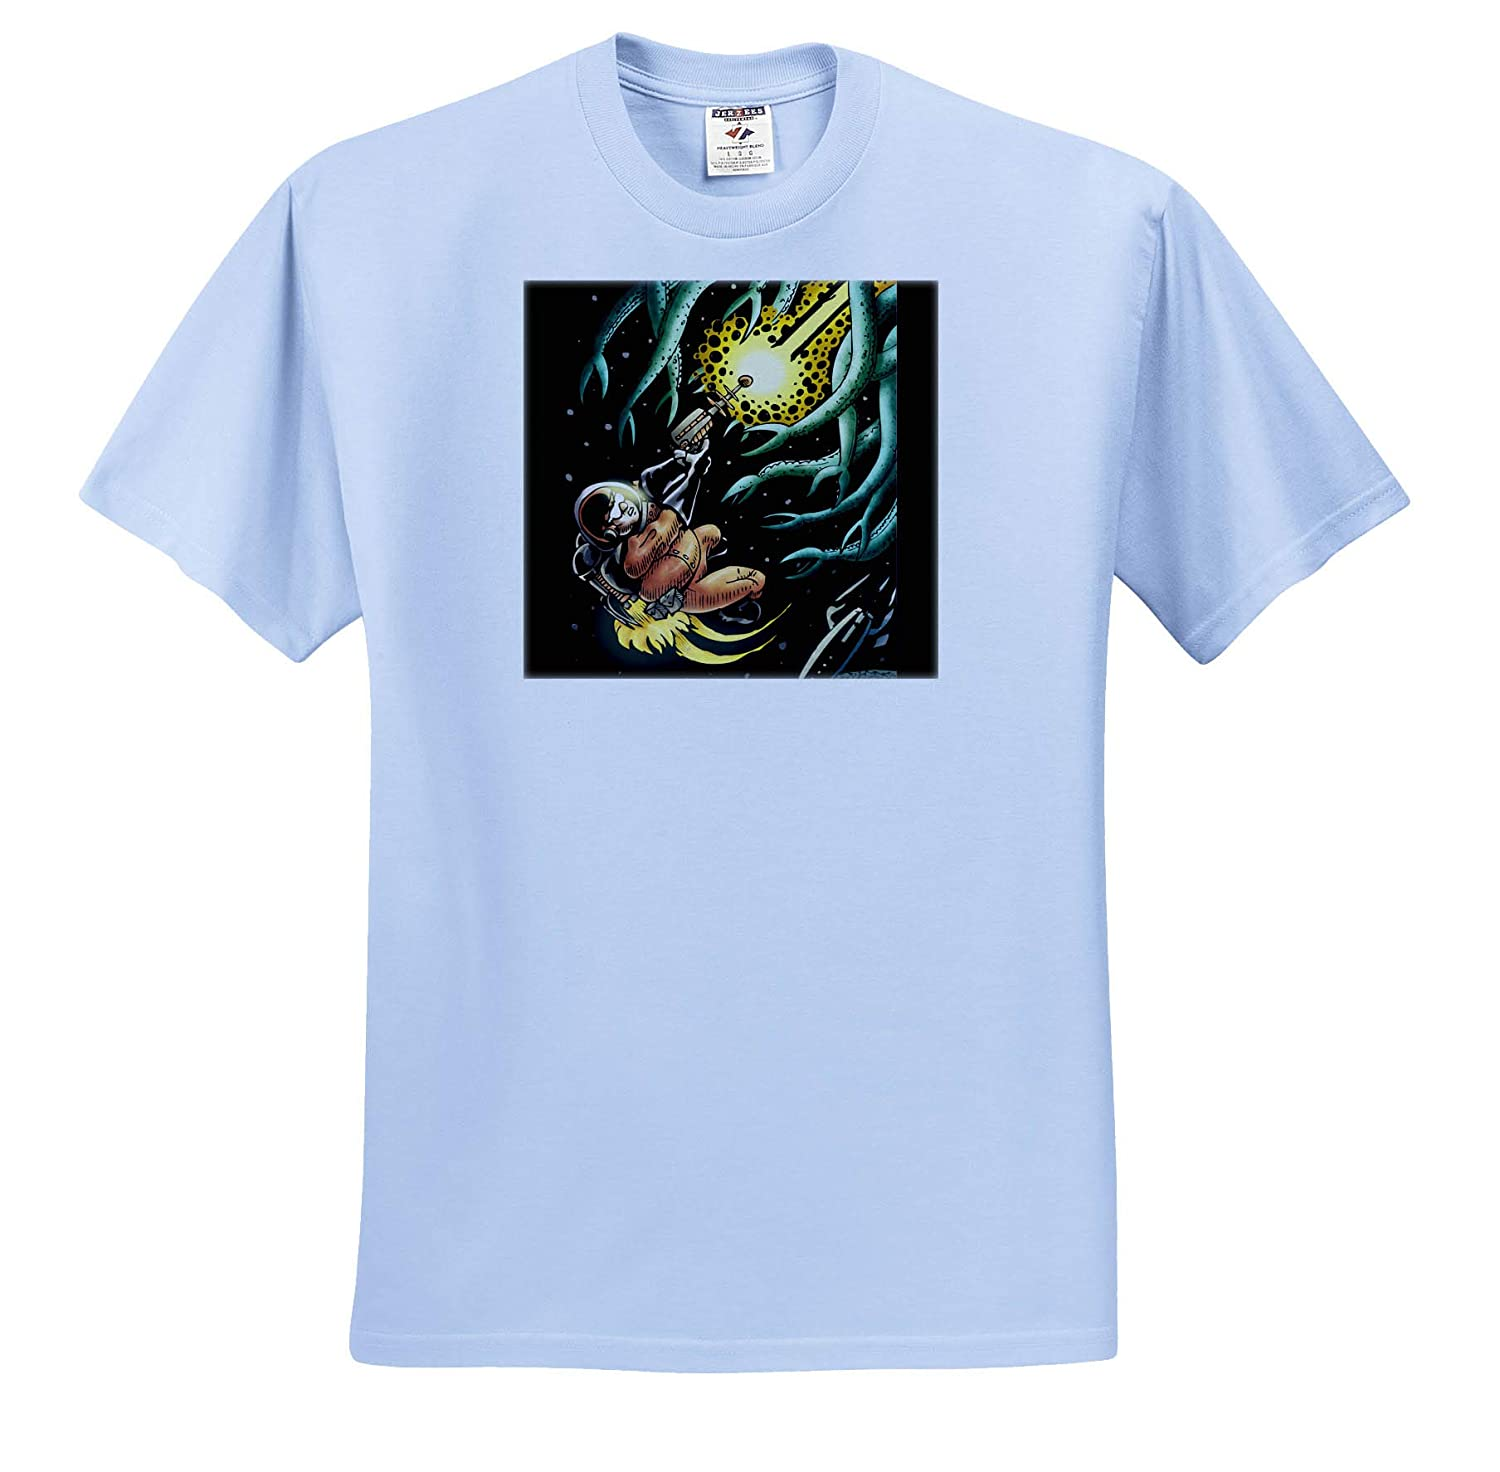 Art Sci-Fi Hero Battles Tentacle Alien in Space 3dRose Travis ECK Commander Hue ts/_317504 Adult T-Shirt XL